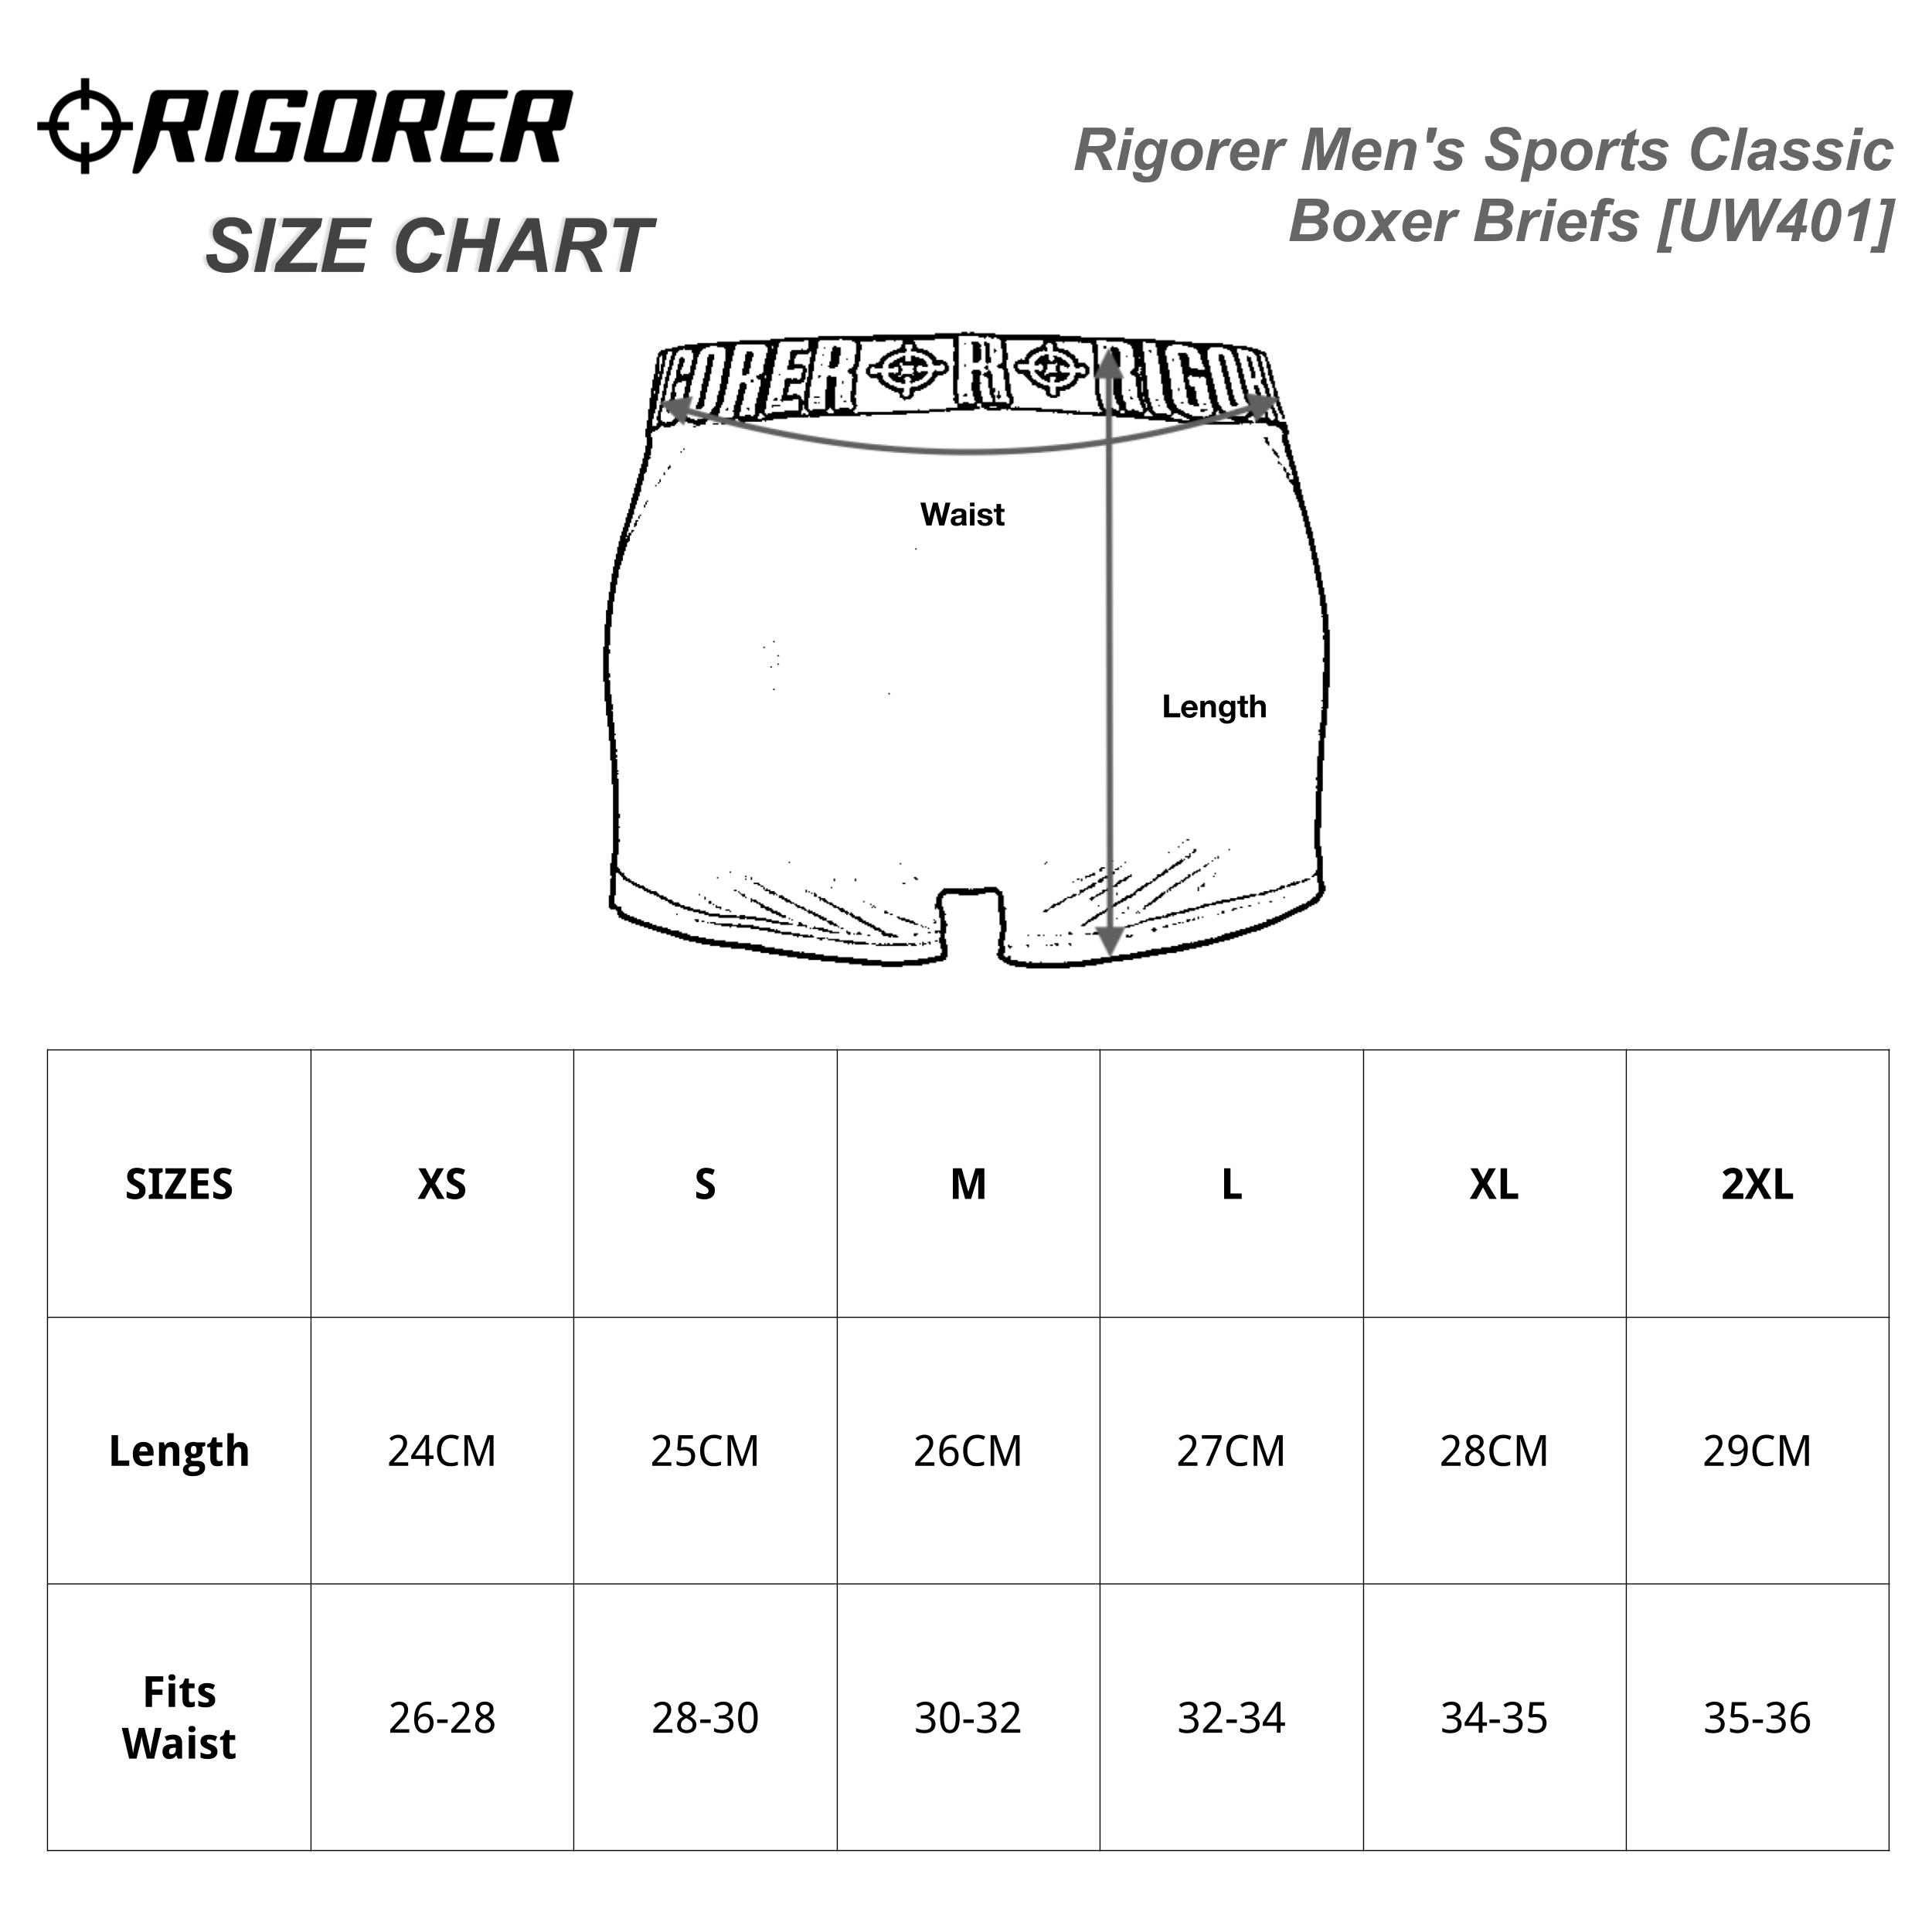 Rigorer Men's Sports Classic Boxer Briefs [UW401] Sizing Chart